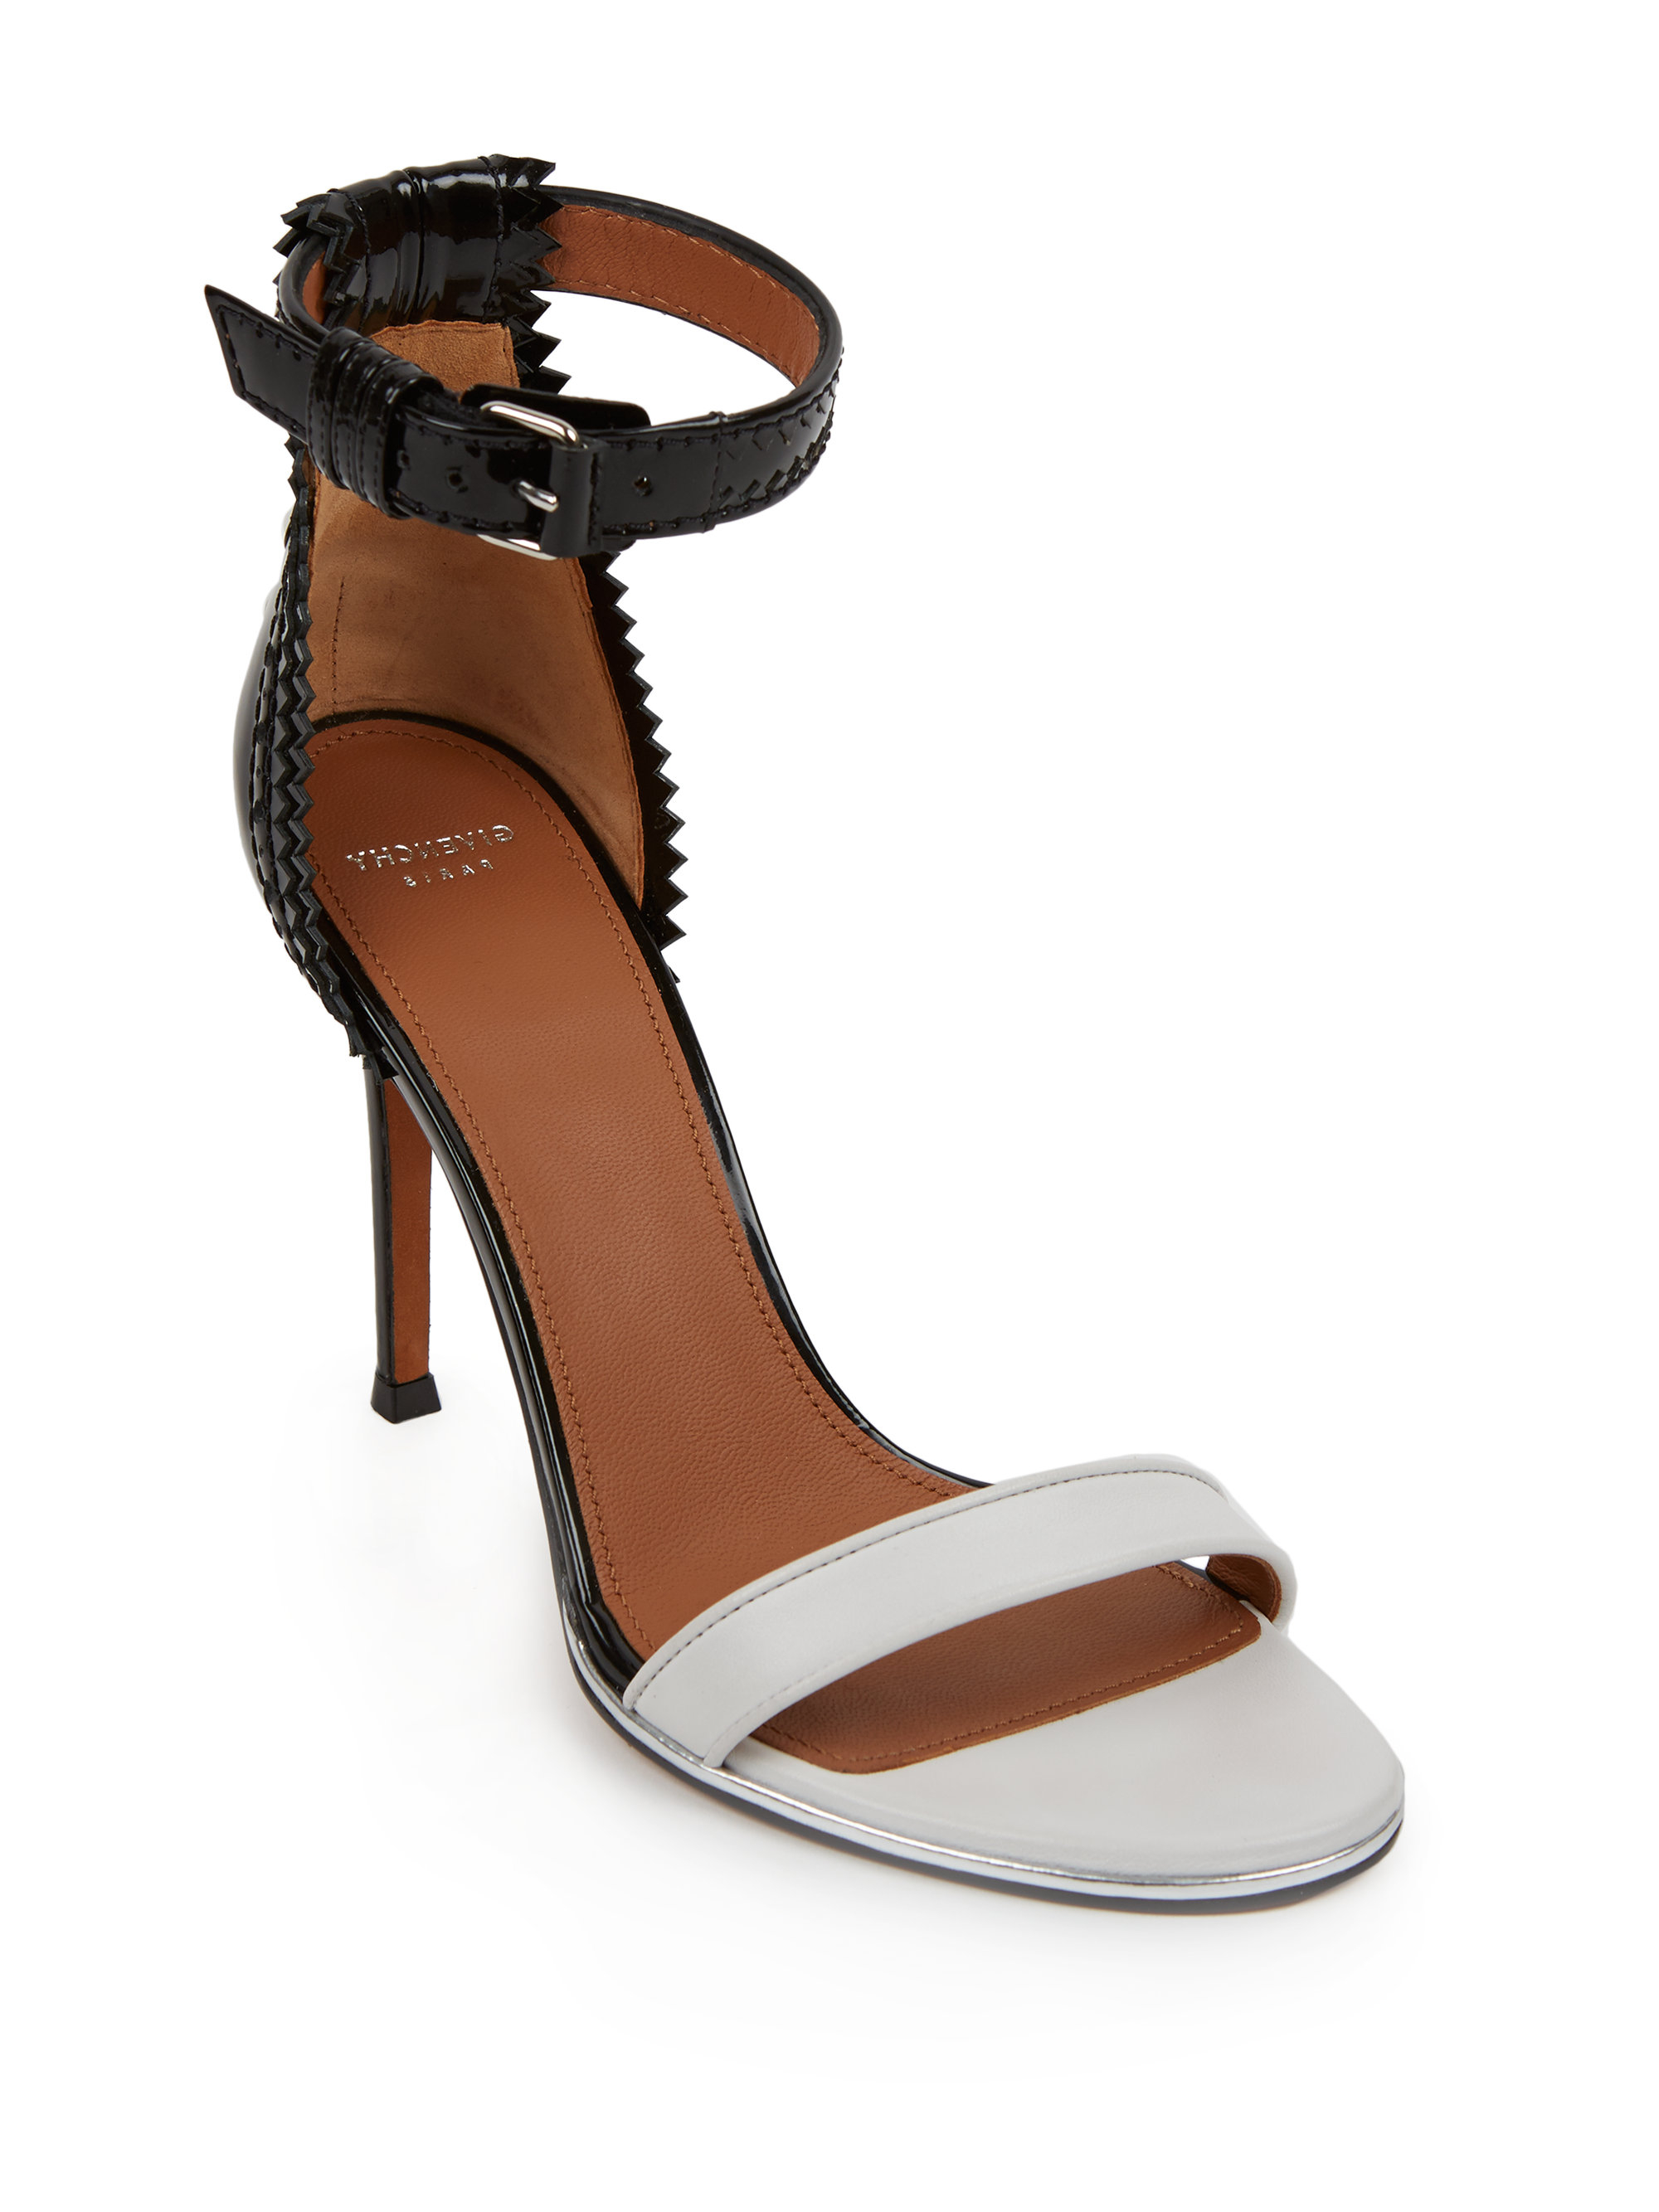 Givenchy Nadia Laced Back Patent Leather Sandals In Black